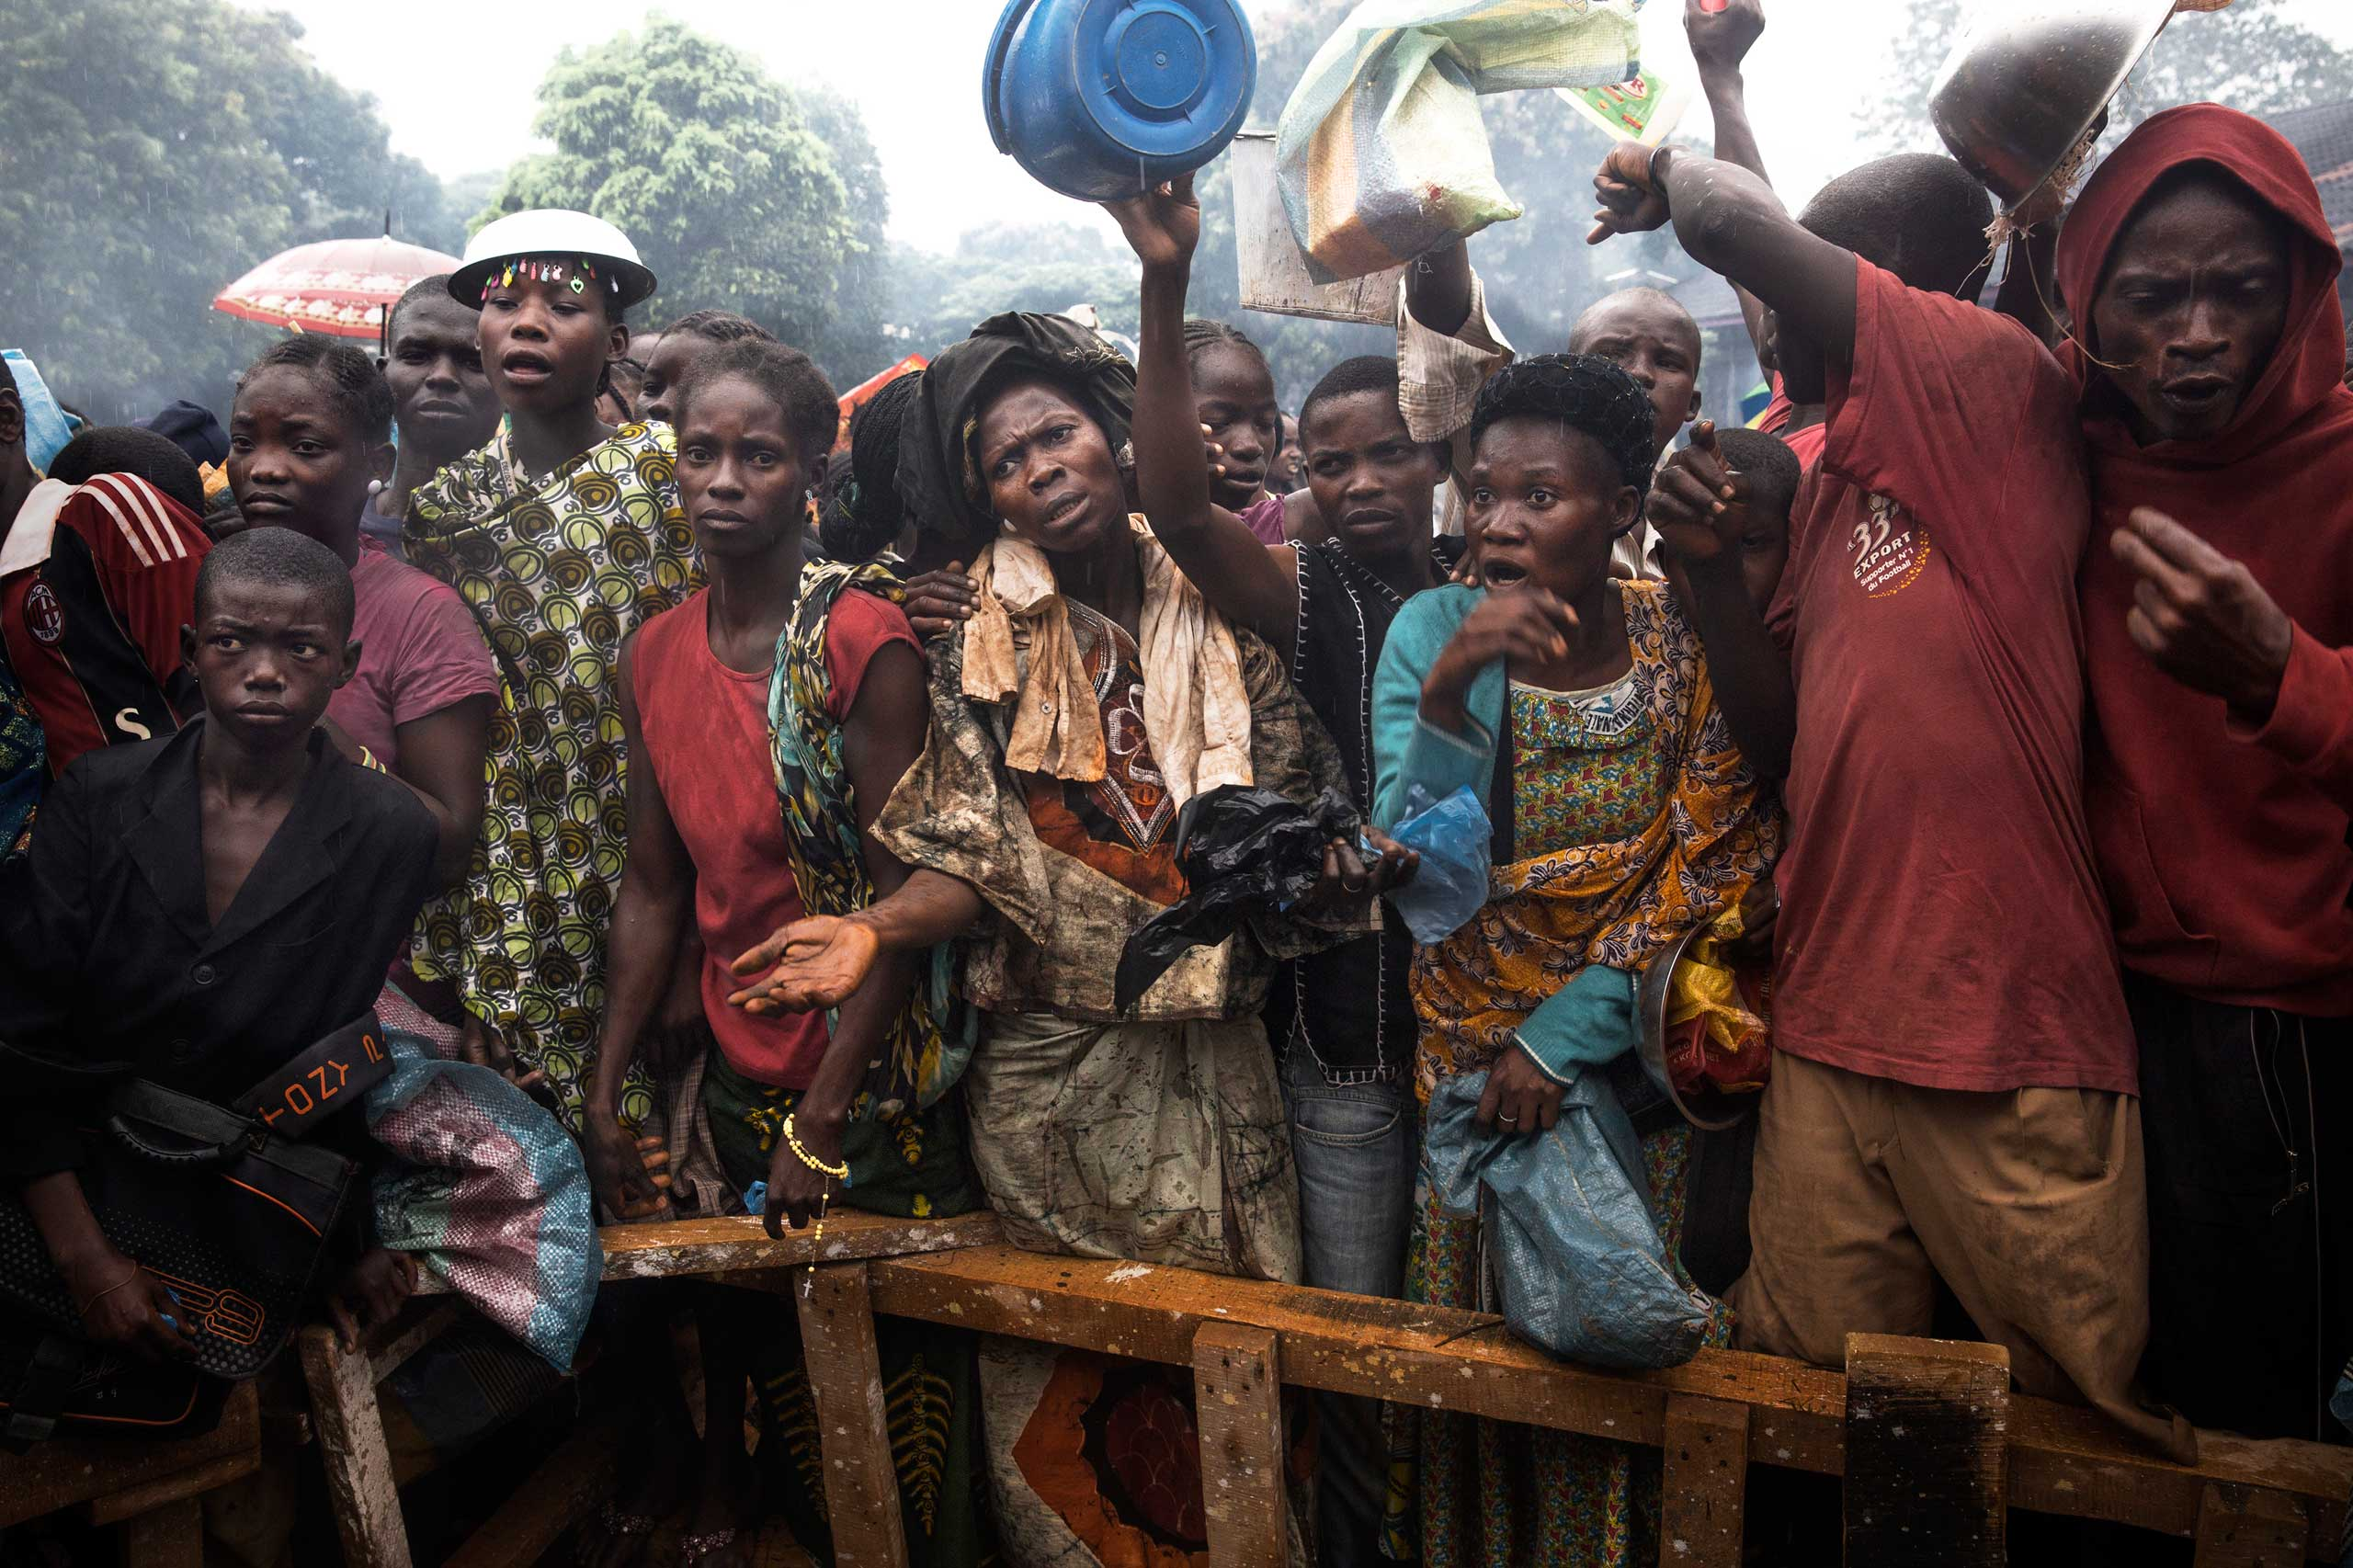 Dec. 9, 2013: Internally displaced people wait for food at the Don Bosco Center in Bangui. Some 18,000 Christians took refuge here.